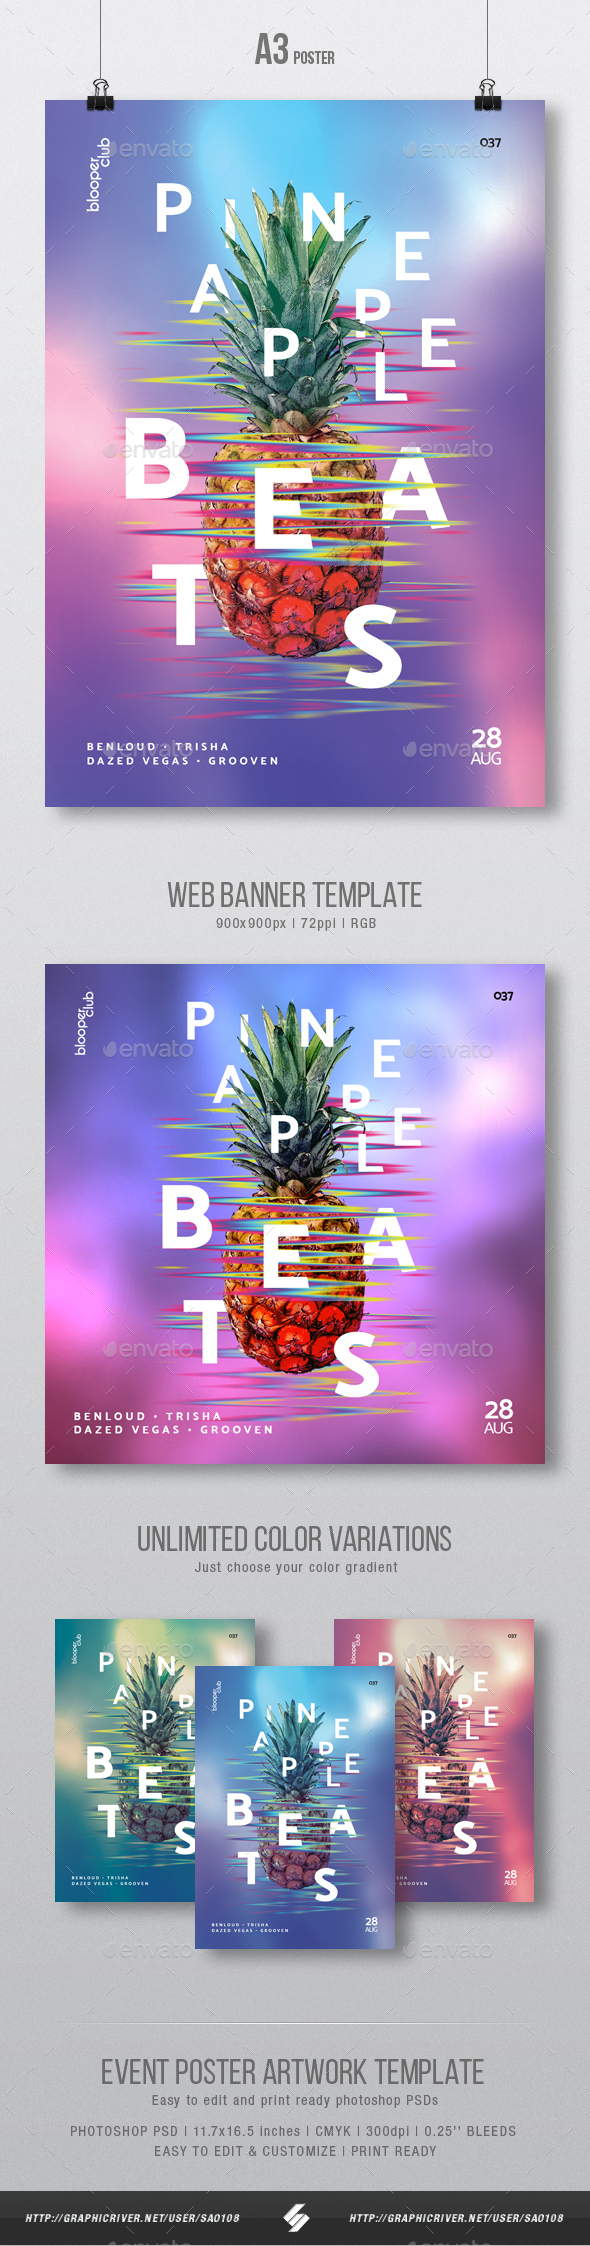 GraphicRiver Pineapple Beats Creative Party Flyer Poster Artwork Template A3 21087975